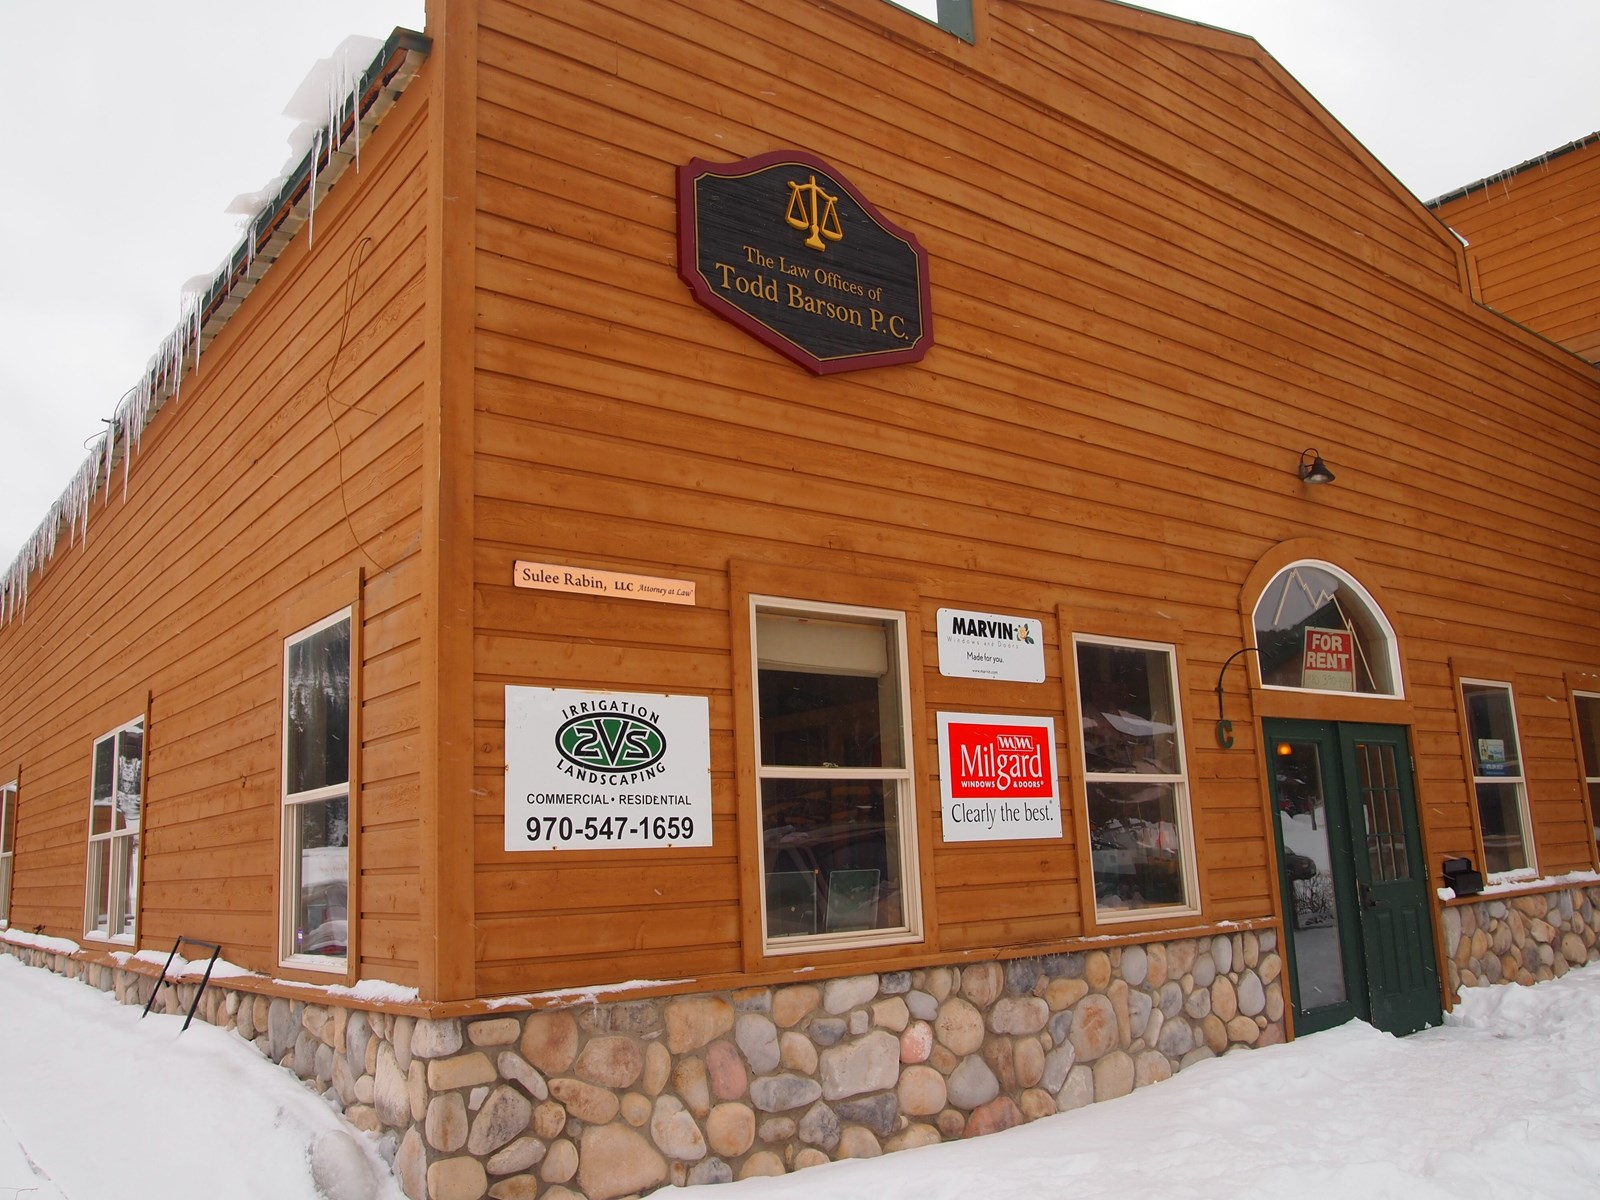 Outstanding spacious commercial property in Breckenridge, CO